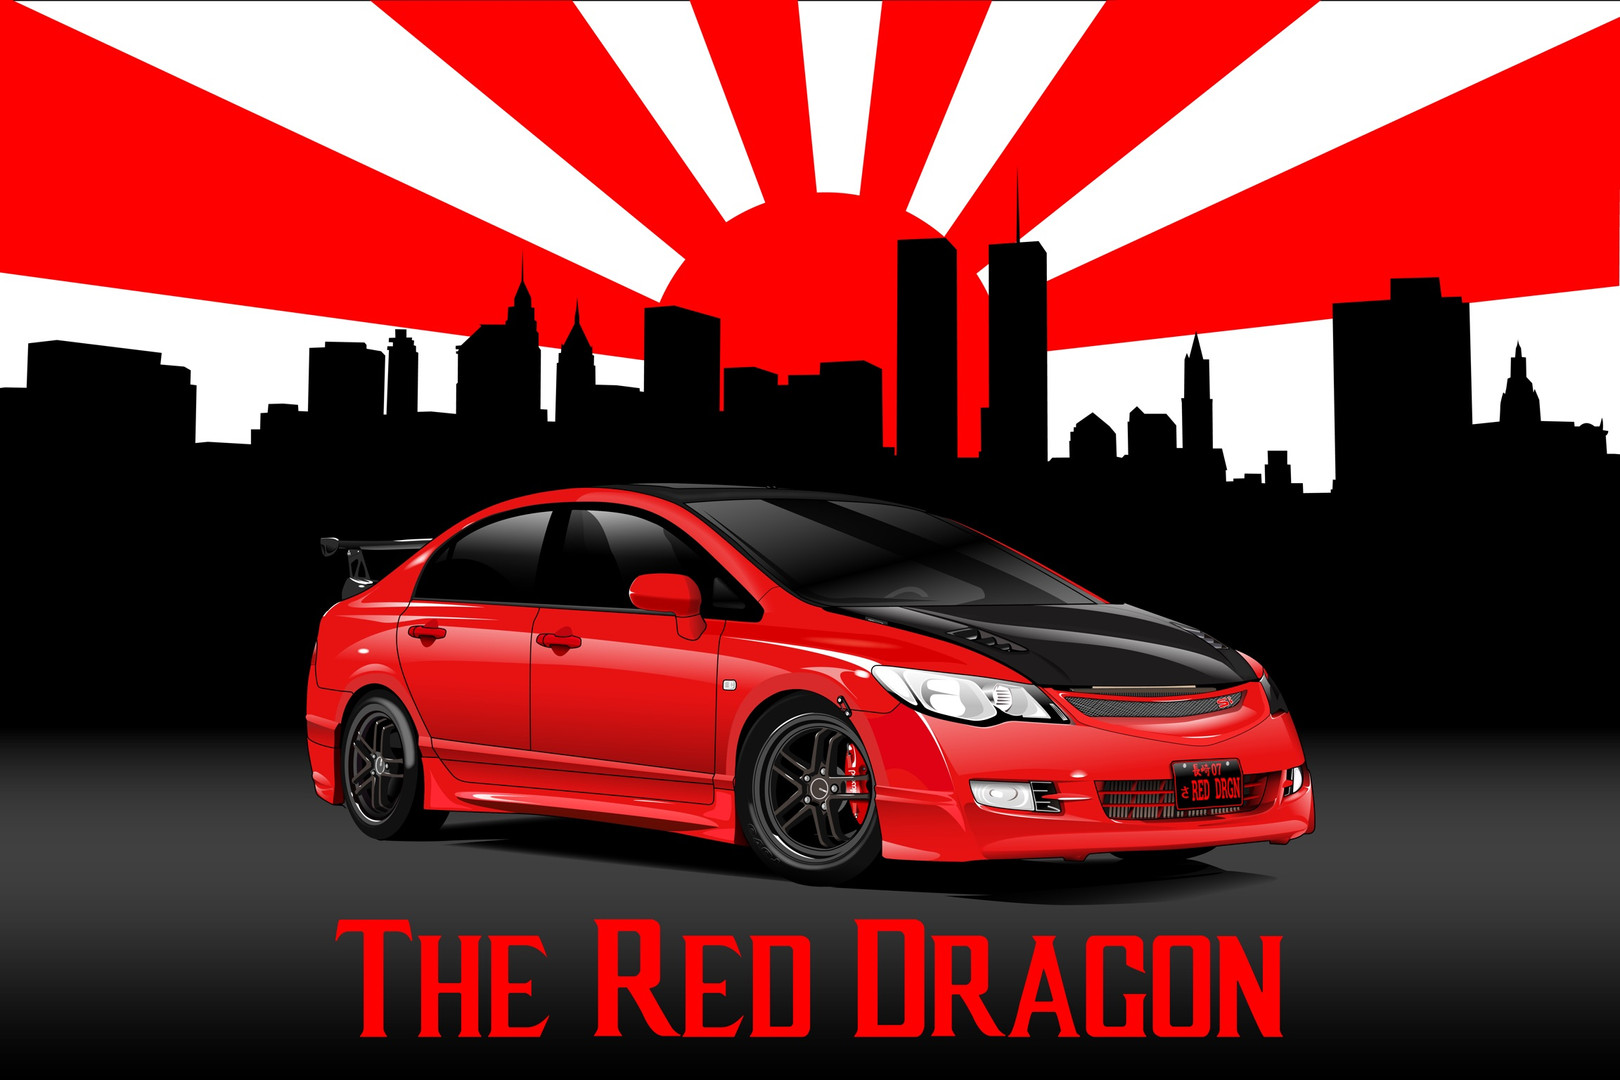 The Red Dragon